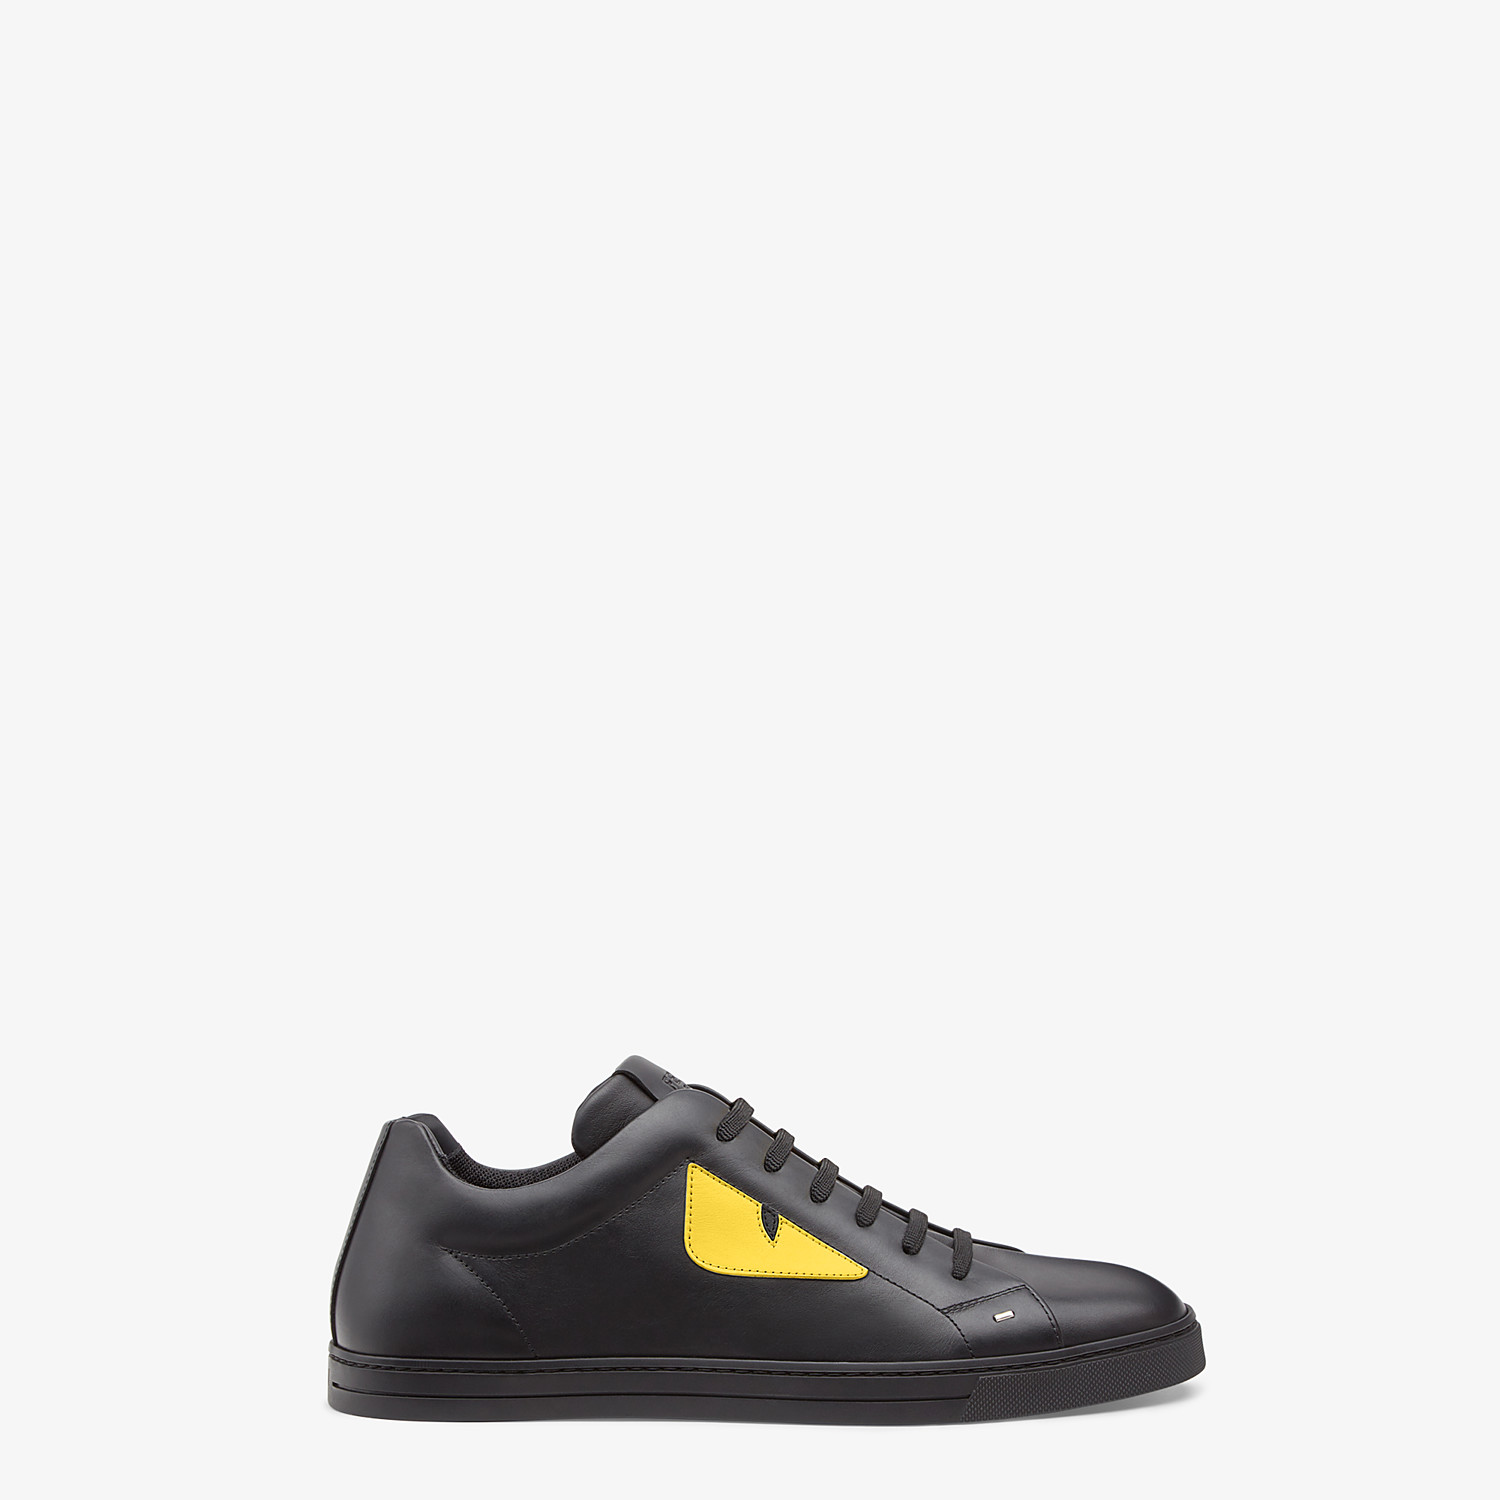 FENDI SNEAKERS - Black and yellow leather low-tops - view 1 detail